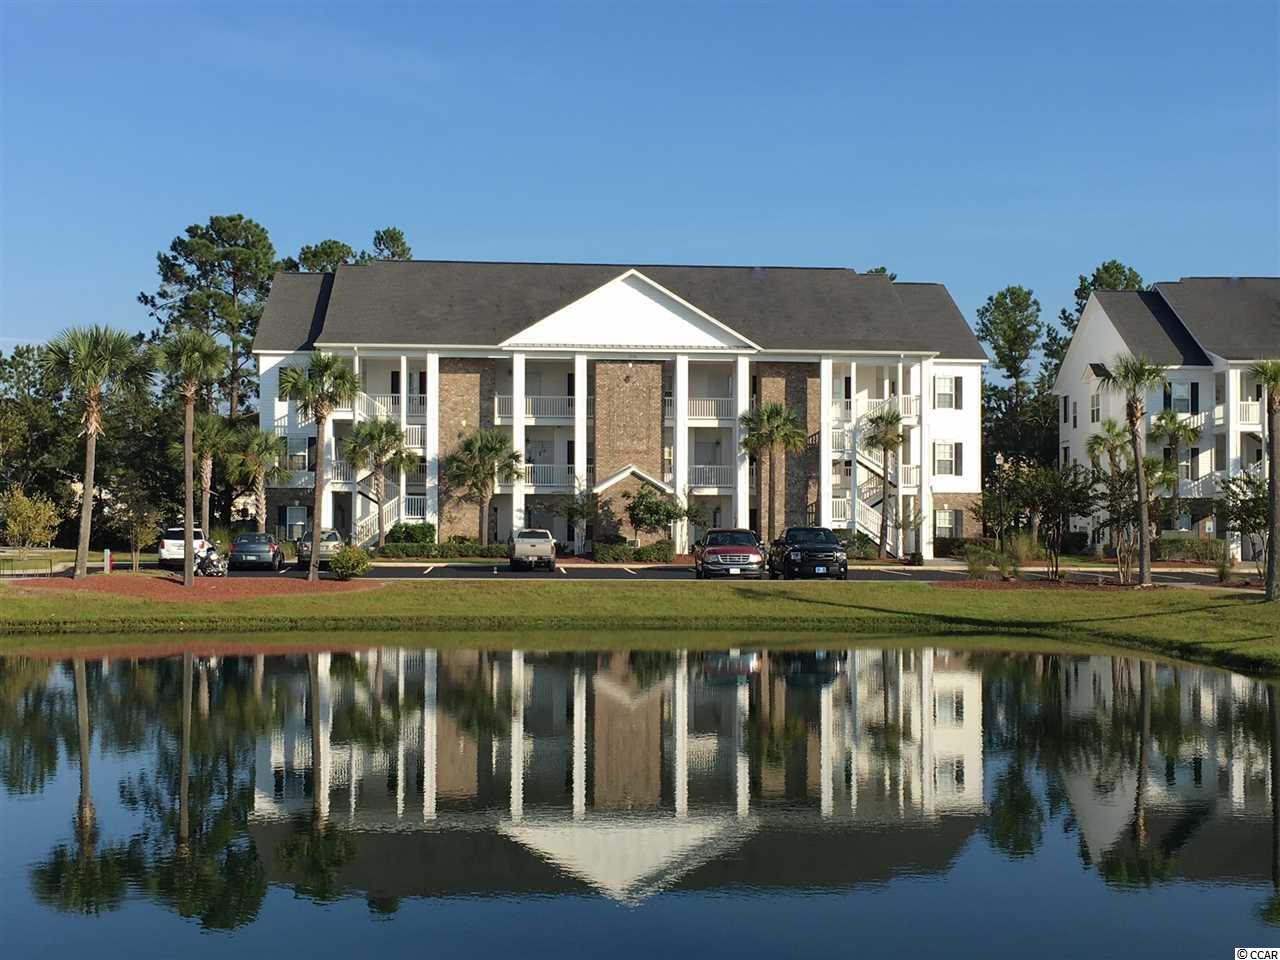 This gorgeous top floor 3BR 2BA villa has wonderful private tree lined views, so enjoying your morning coffee on your large screened in porch just got even more relaxing. There is still time to come help design your home by choosing color options for your flooring, granite and cabinet options. Other amazing features of this home include vaulted ceilings, granite counter tops in kitchen and matching granite in all bathrooms, screened in porch, outside storage unit, walk in closets and more. This community will be gated once the last building is completed, low HOA fees does have an elevator and only 2 miles to the beach. This is a perfect primary home, second home or beach retreat. The units are all on one level and the care free living provide by this community gives you the full essence of coastal living. This building is currently under construction (pictures are of our current model and not the actual unit for sale) and has an estimated completion date of June 2020 (that can change). We do have an onsite model available to see everyday; the model hours are Monday - Friday 10am-4pm, Saturday 12pm-4pm and Sunday 12pm-3pm. Stop by and tour these gorgeous homes for yourself. All sq.footage is approximate and not guaranteed, buyer is responsible for verification.